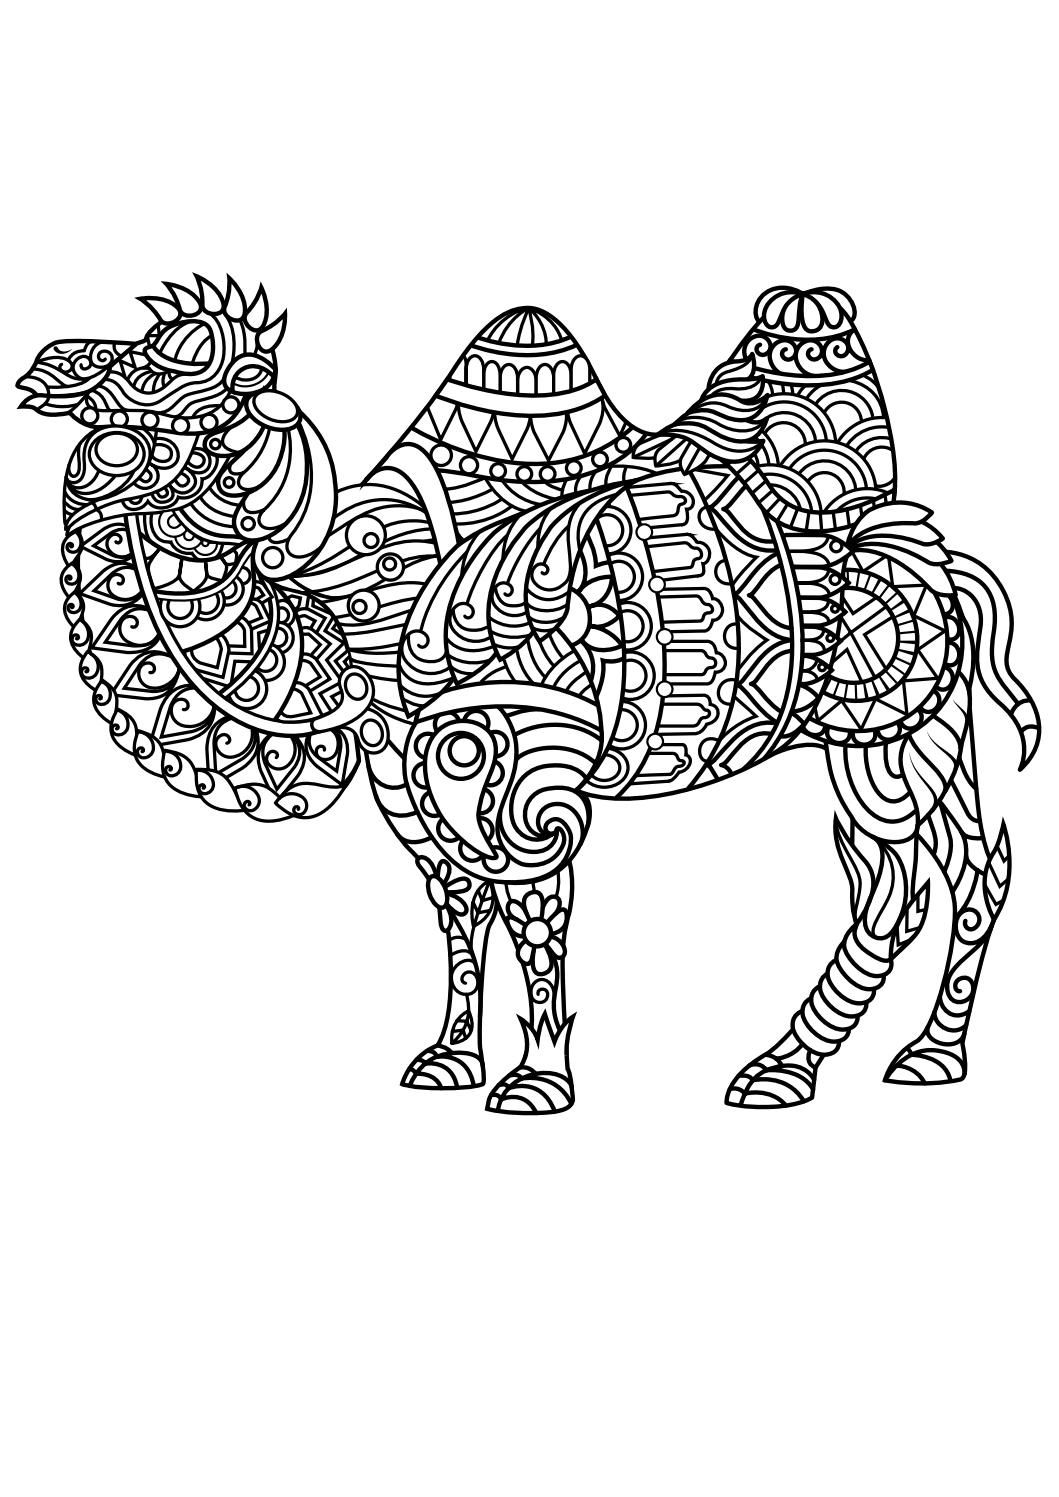 Animal coloring pages pdf | Mandala coloring pages, Adult ... | free printable coloring pages for adults animals